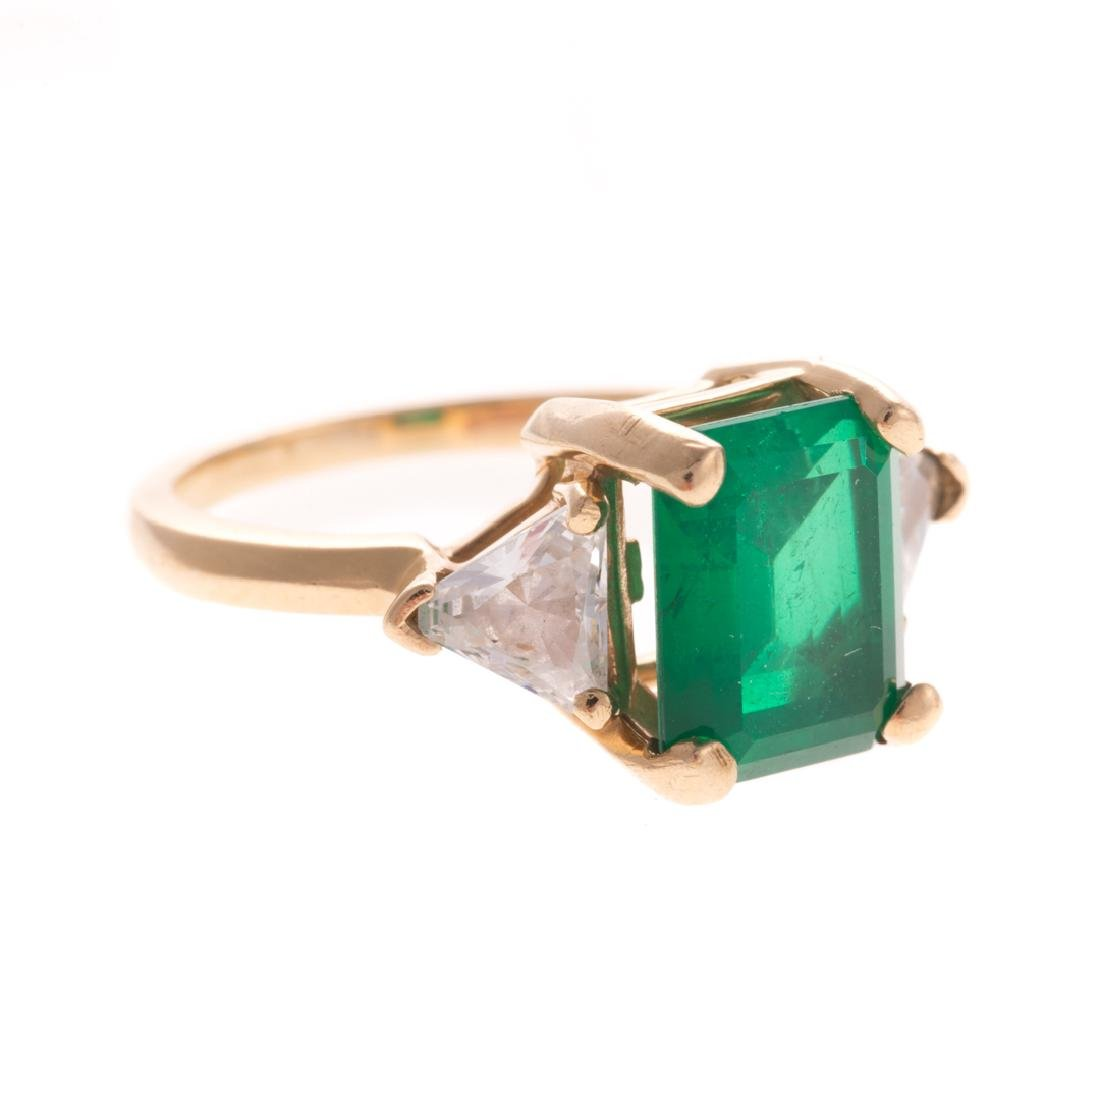 Two Lady's Gemstone Rings in 14K Gold - 3